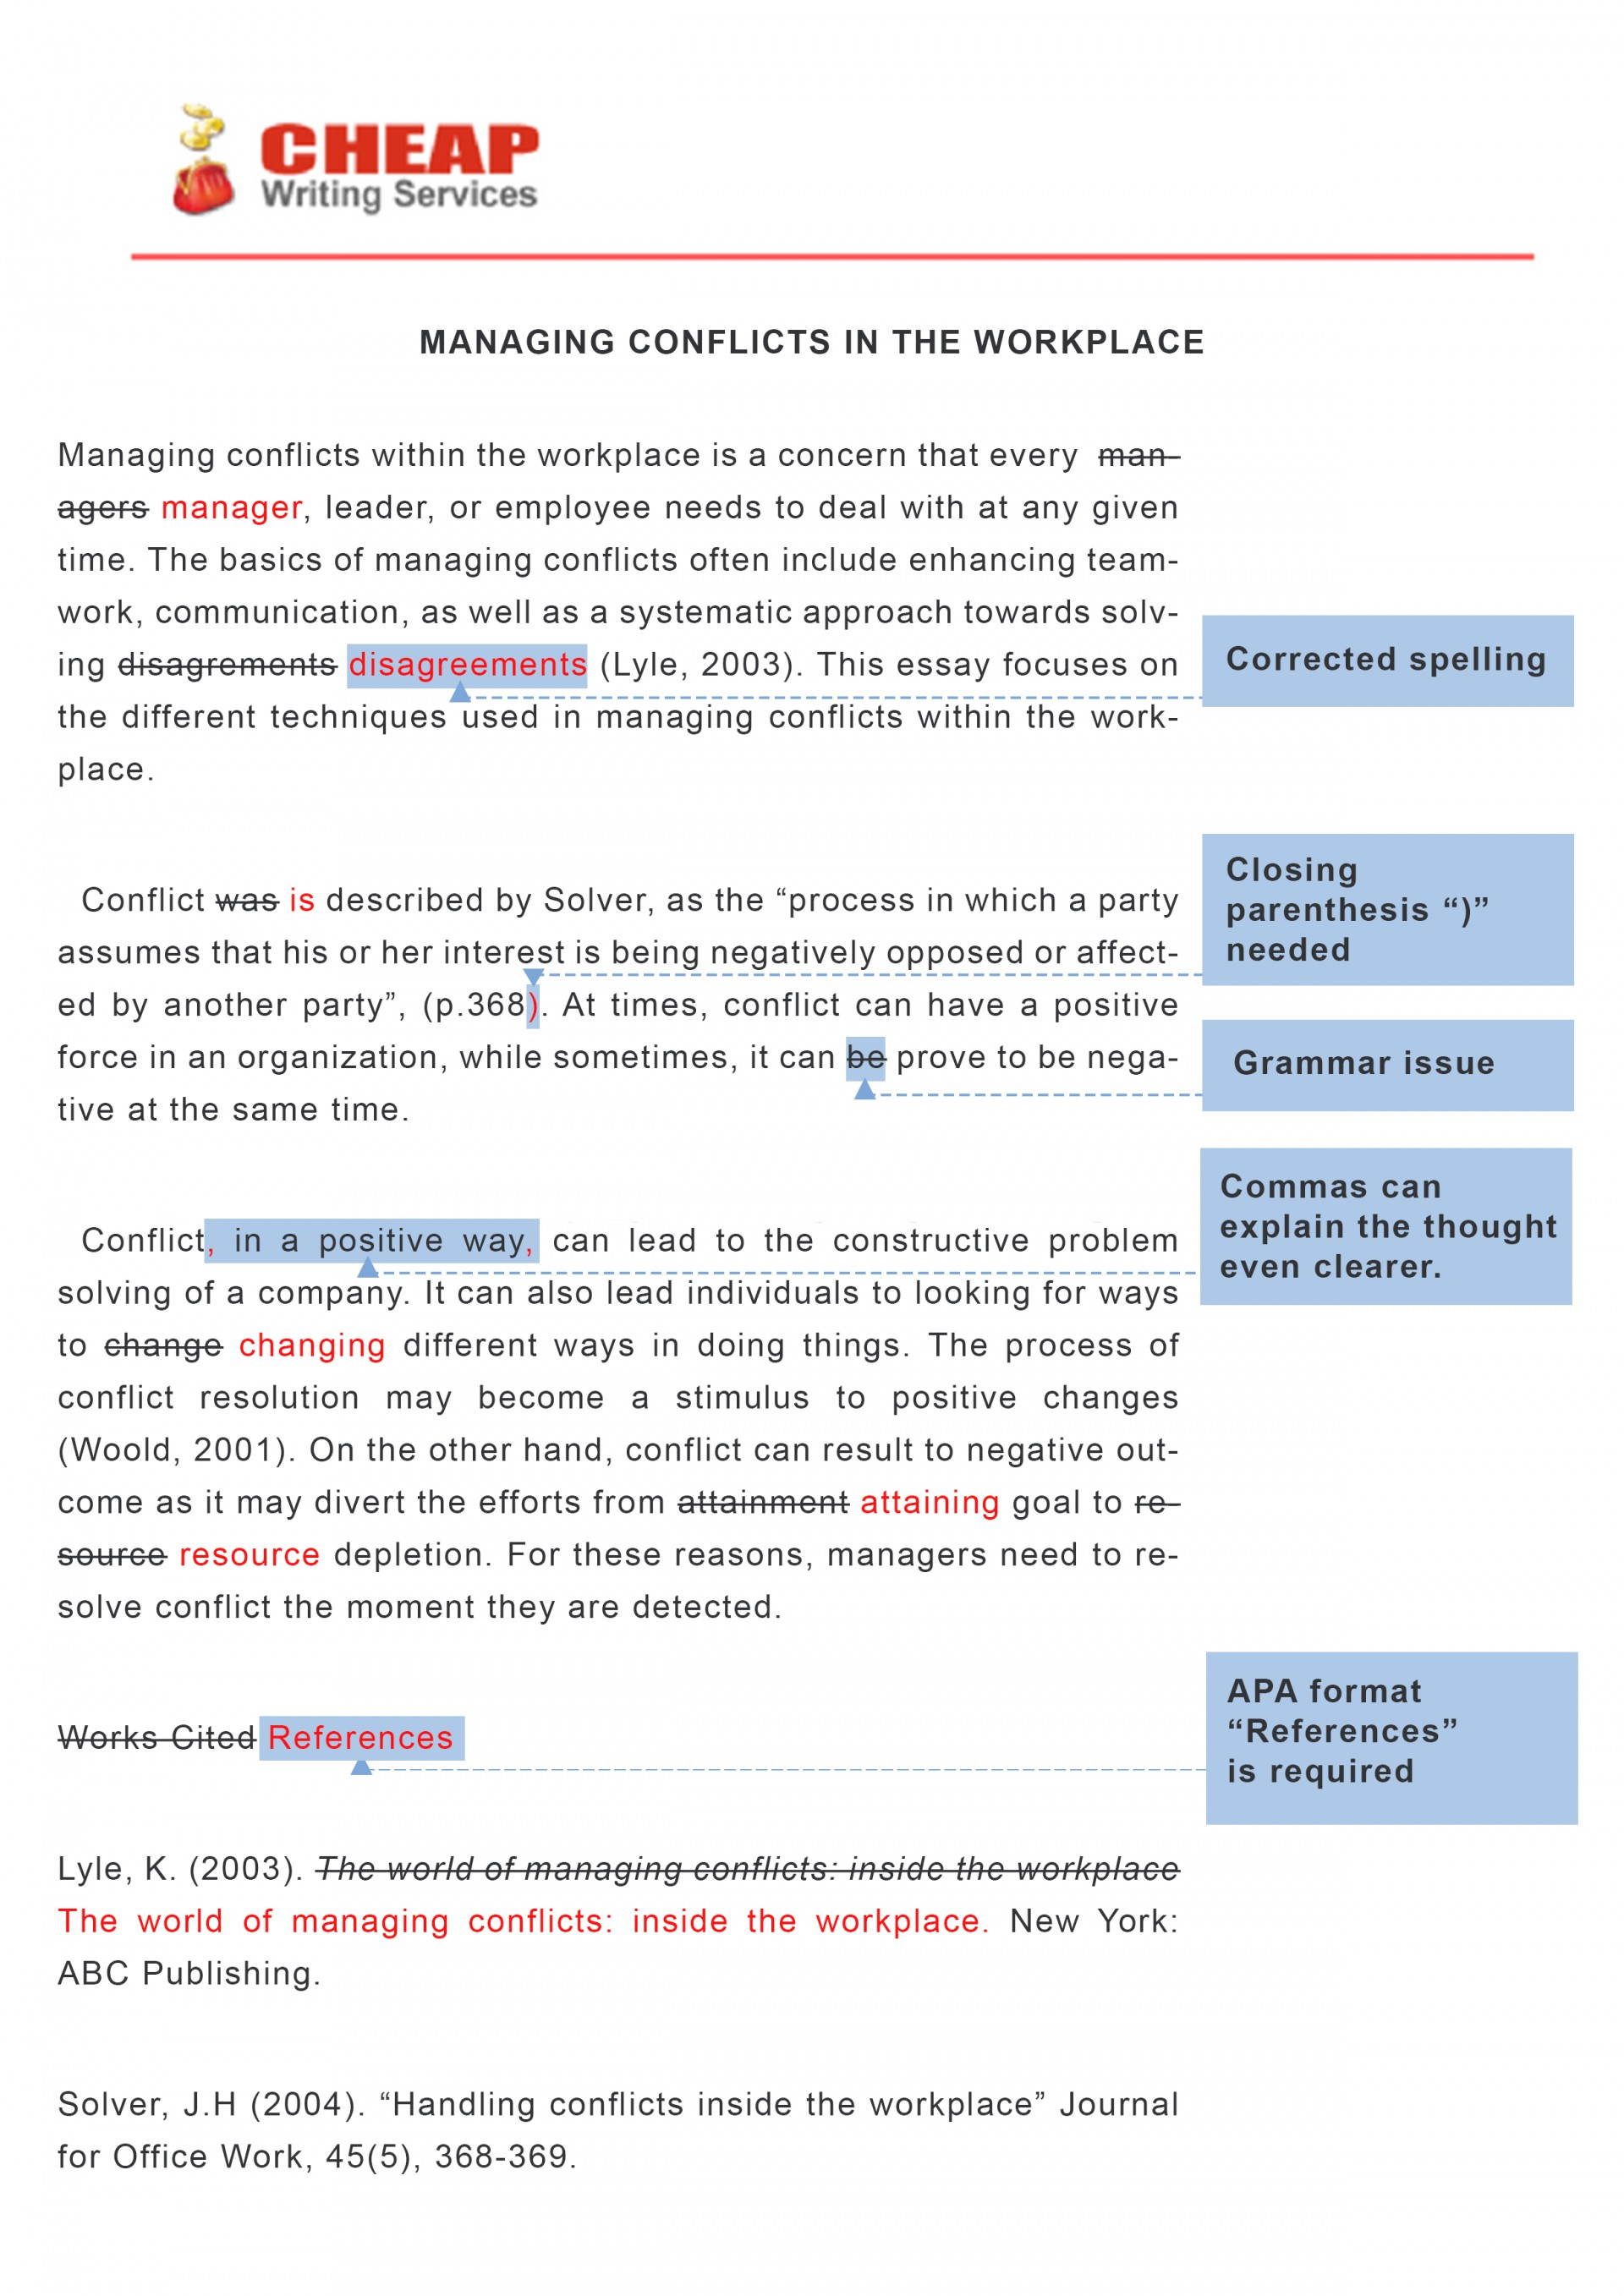 006 Essay Editing Example Stunning Services Writing Canada Plagiarism 1920